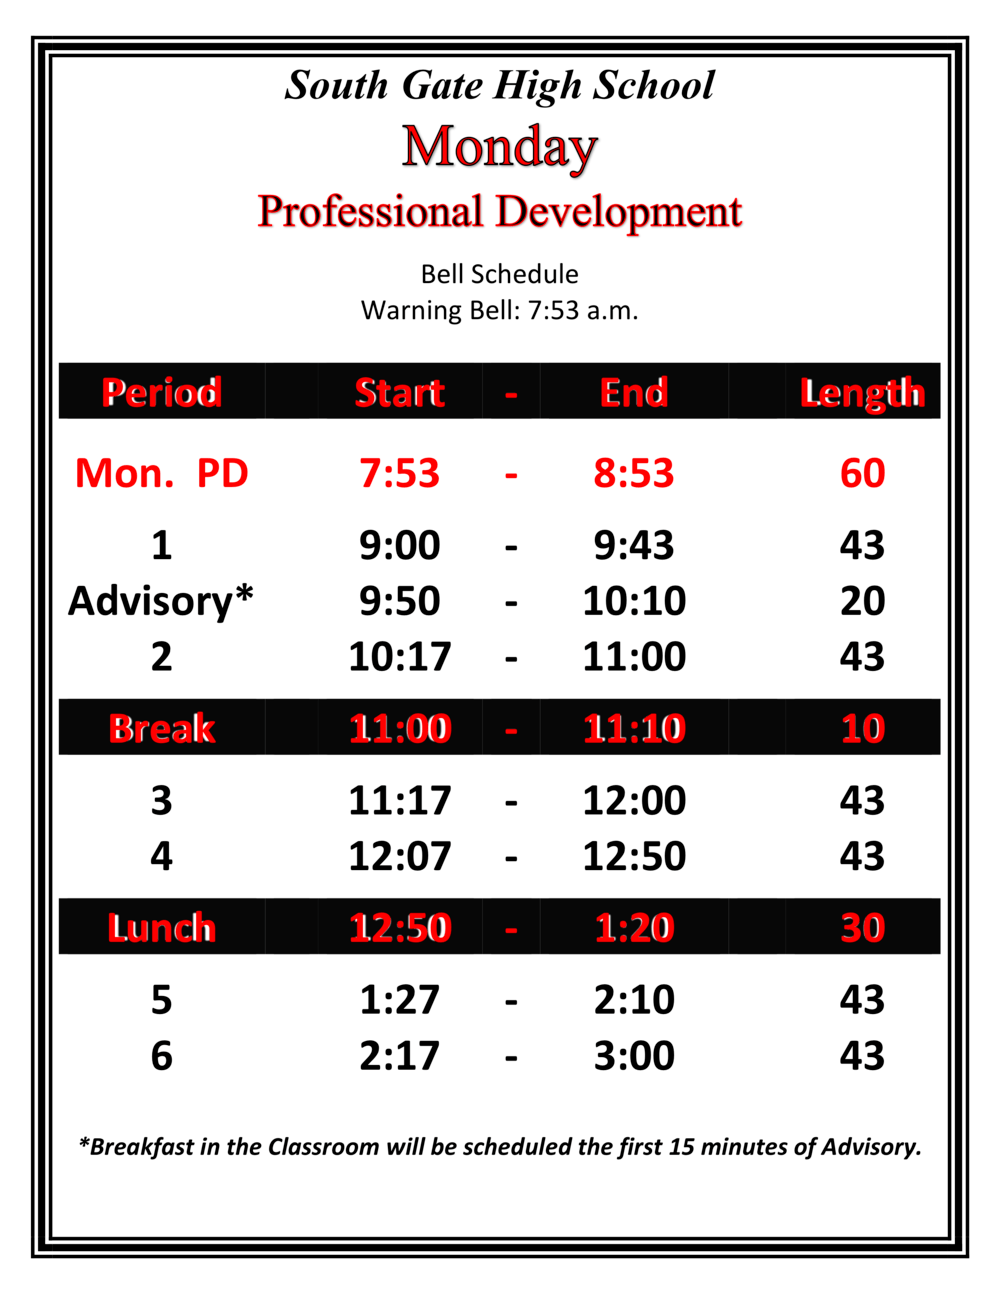 PD Monday Schedule